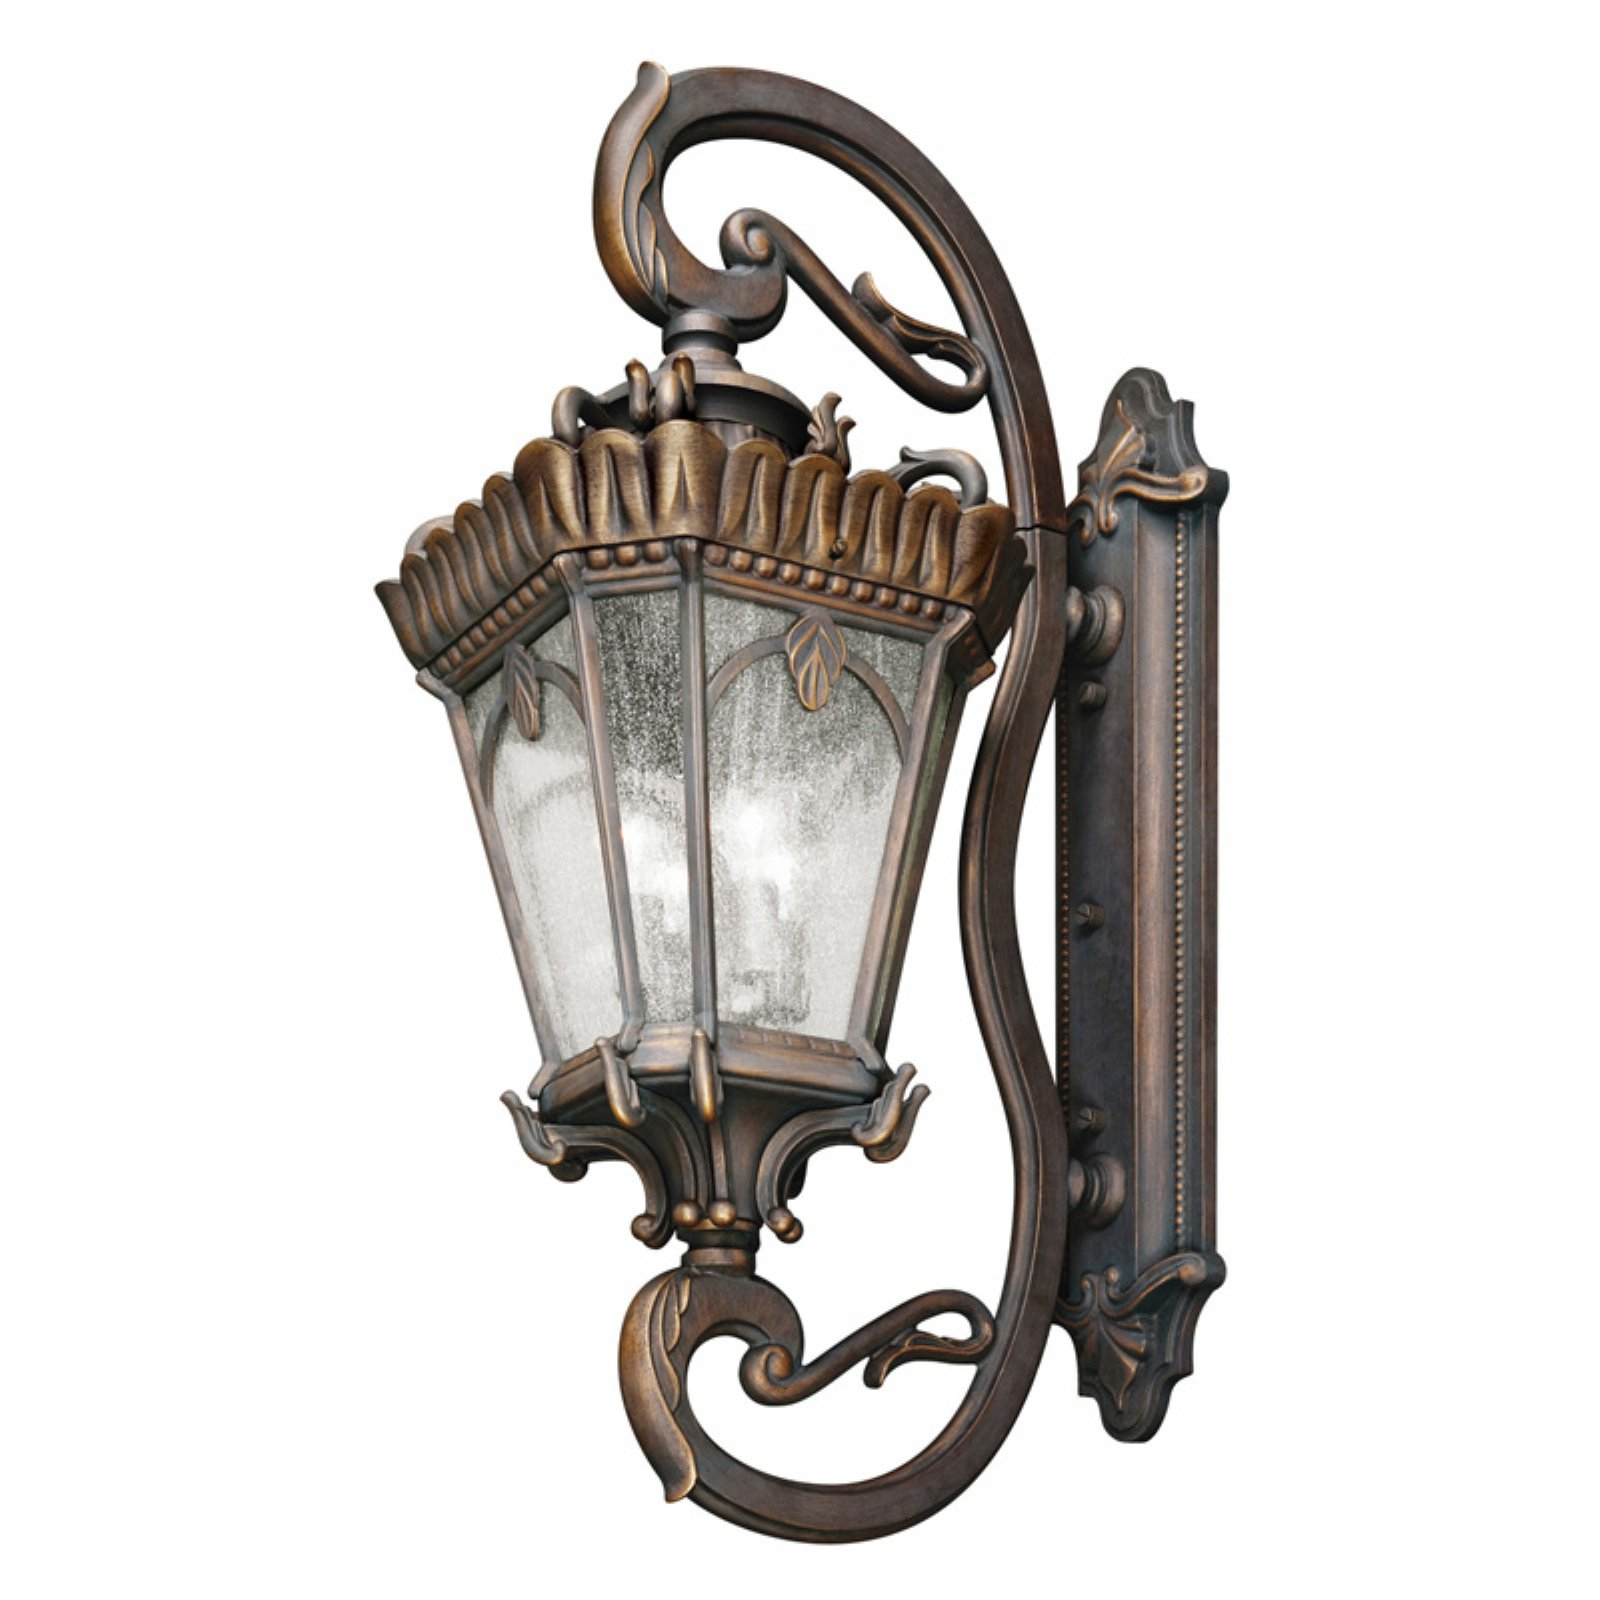 Kichler Tournai 9360 Outdoor Wall Lantern - 17 in.